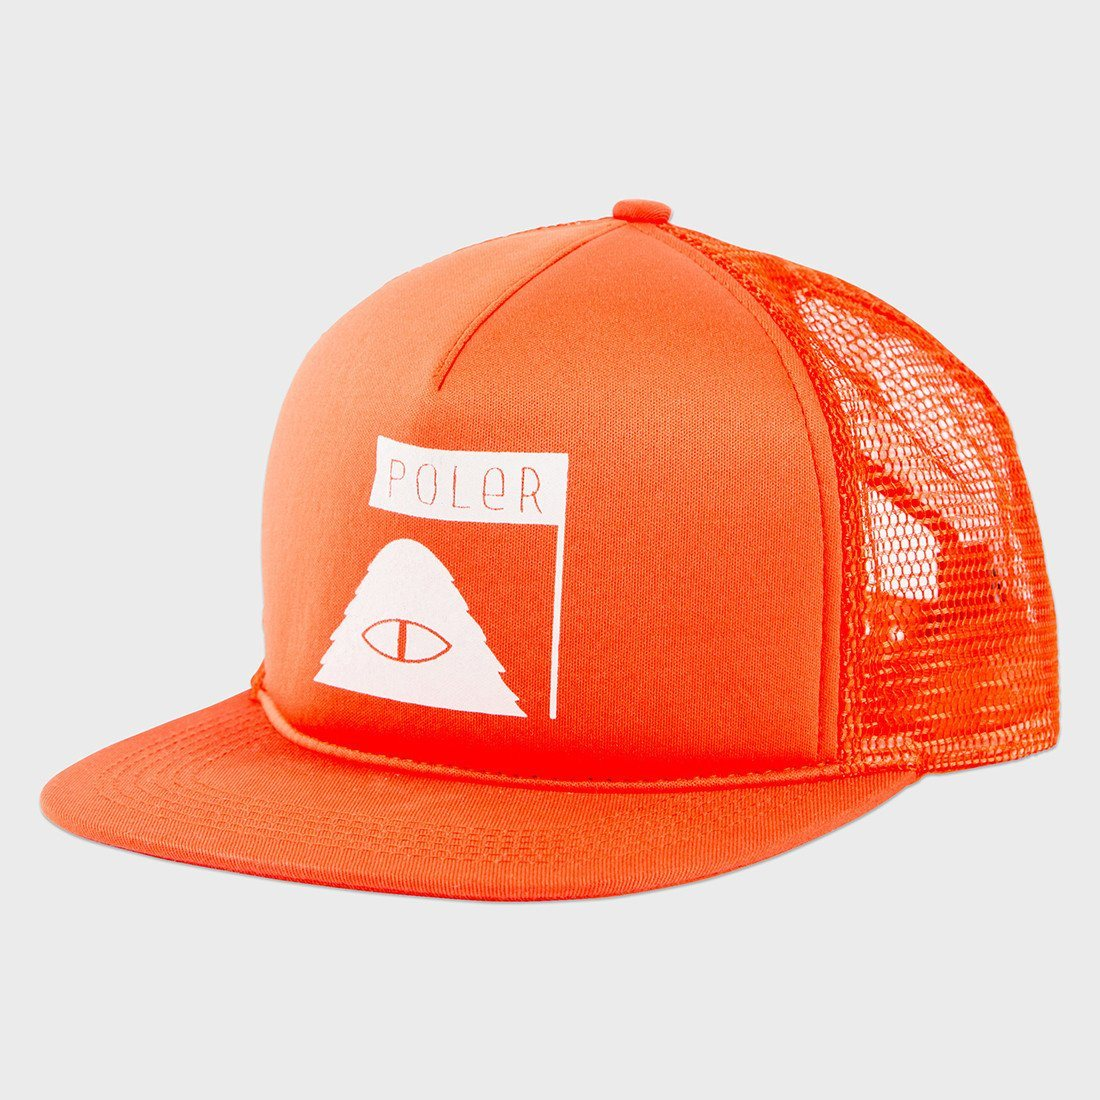 Poler Summit Mesh Trucker Hat Burnt Orange